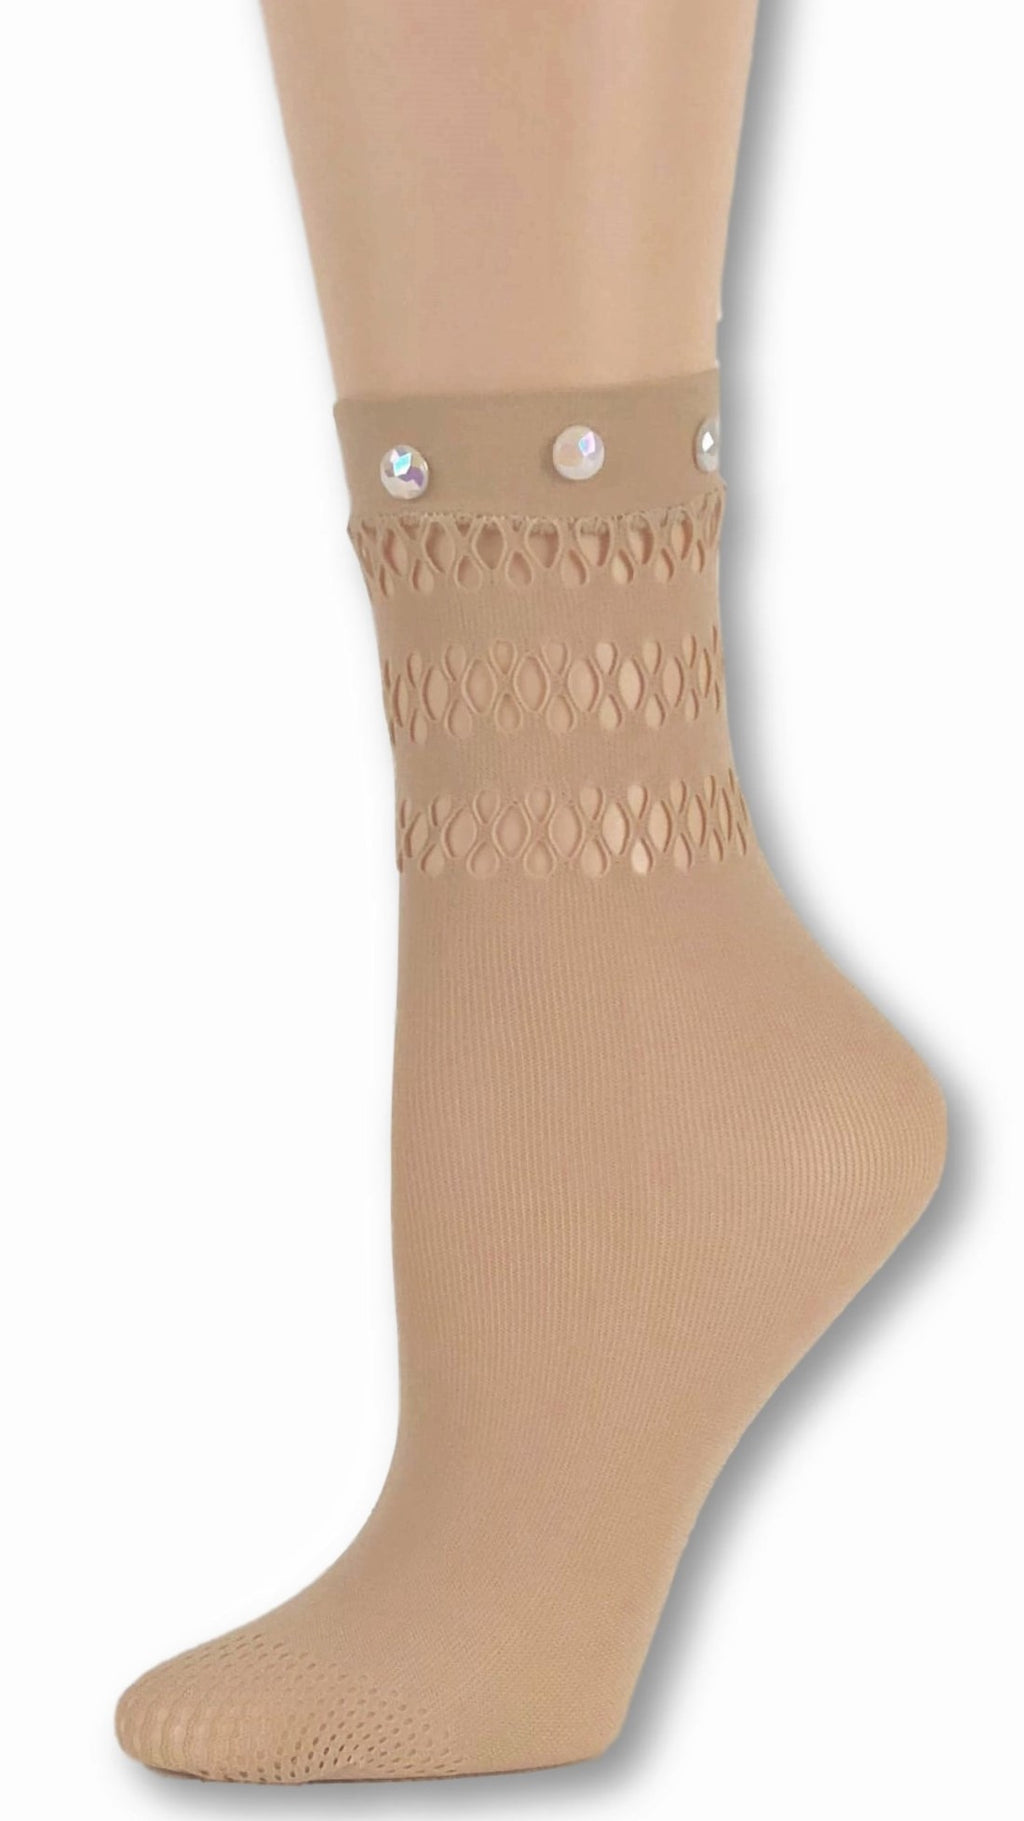 Trendy Beige Custom Mesh Socks with beads